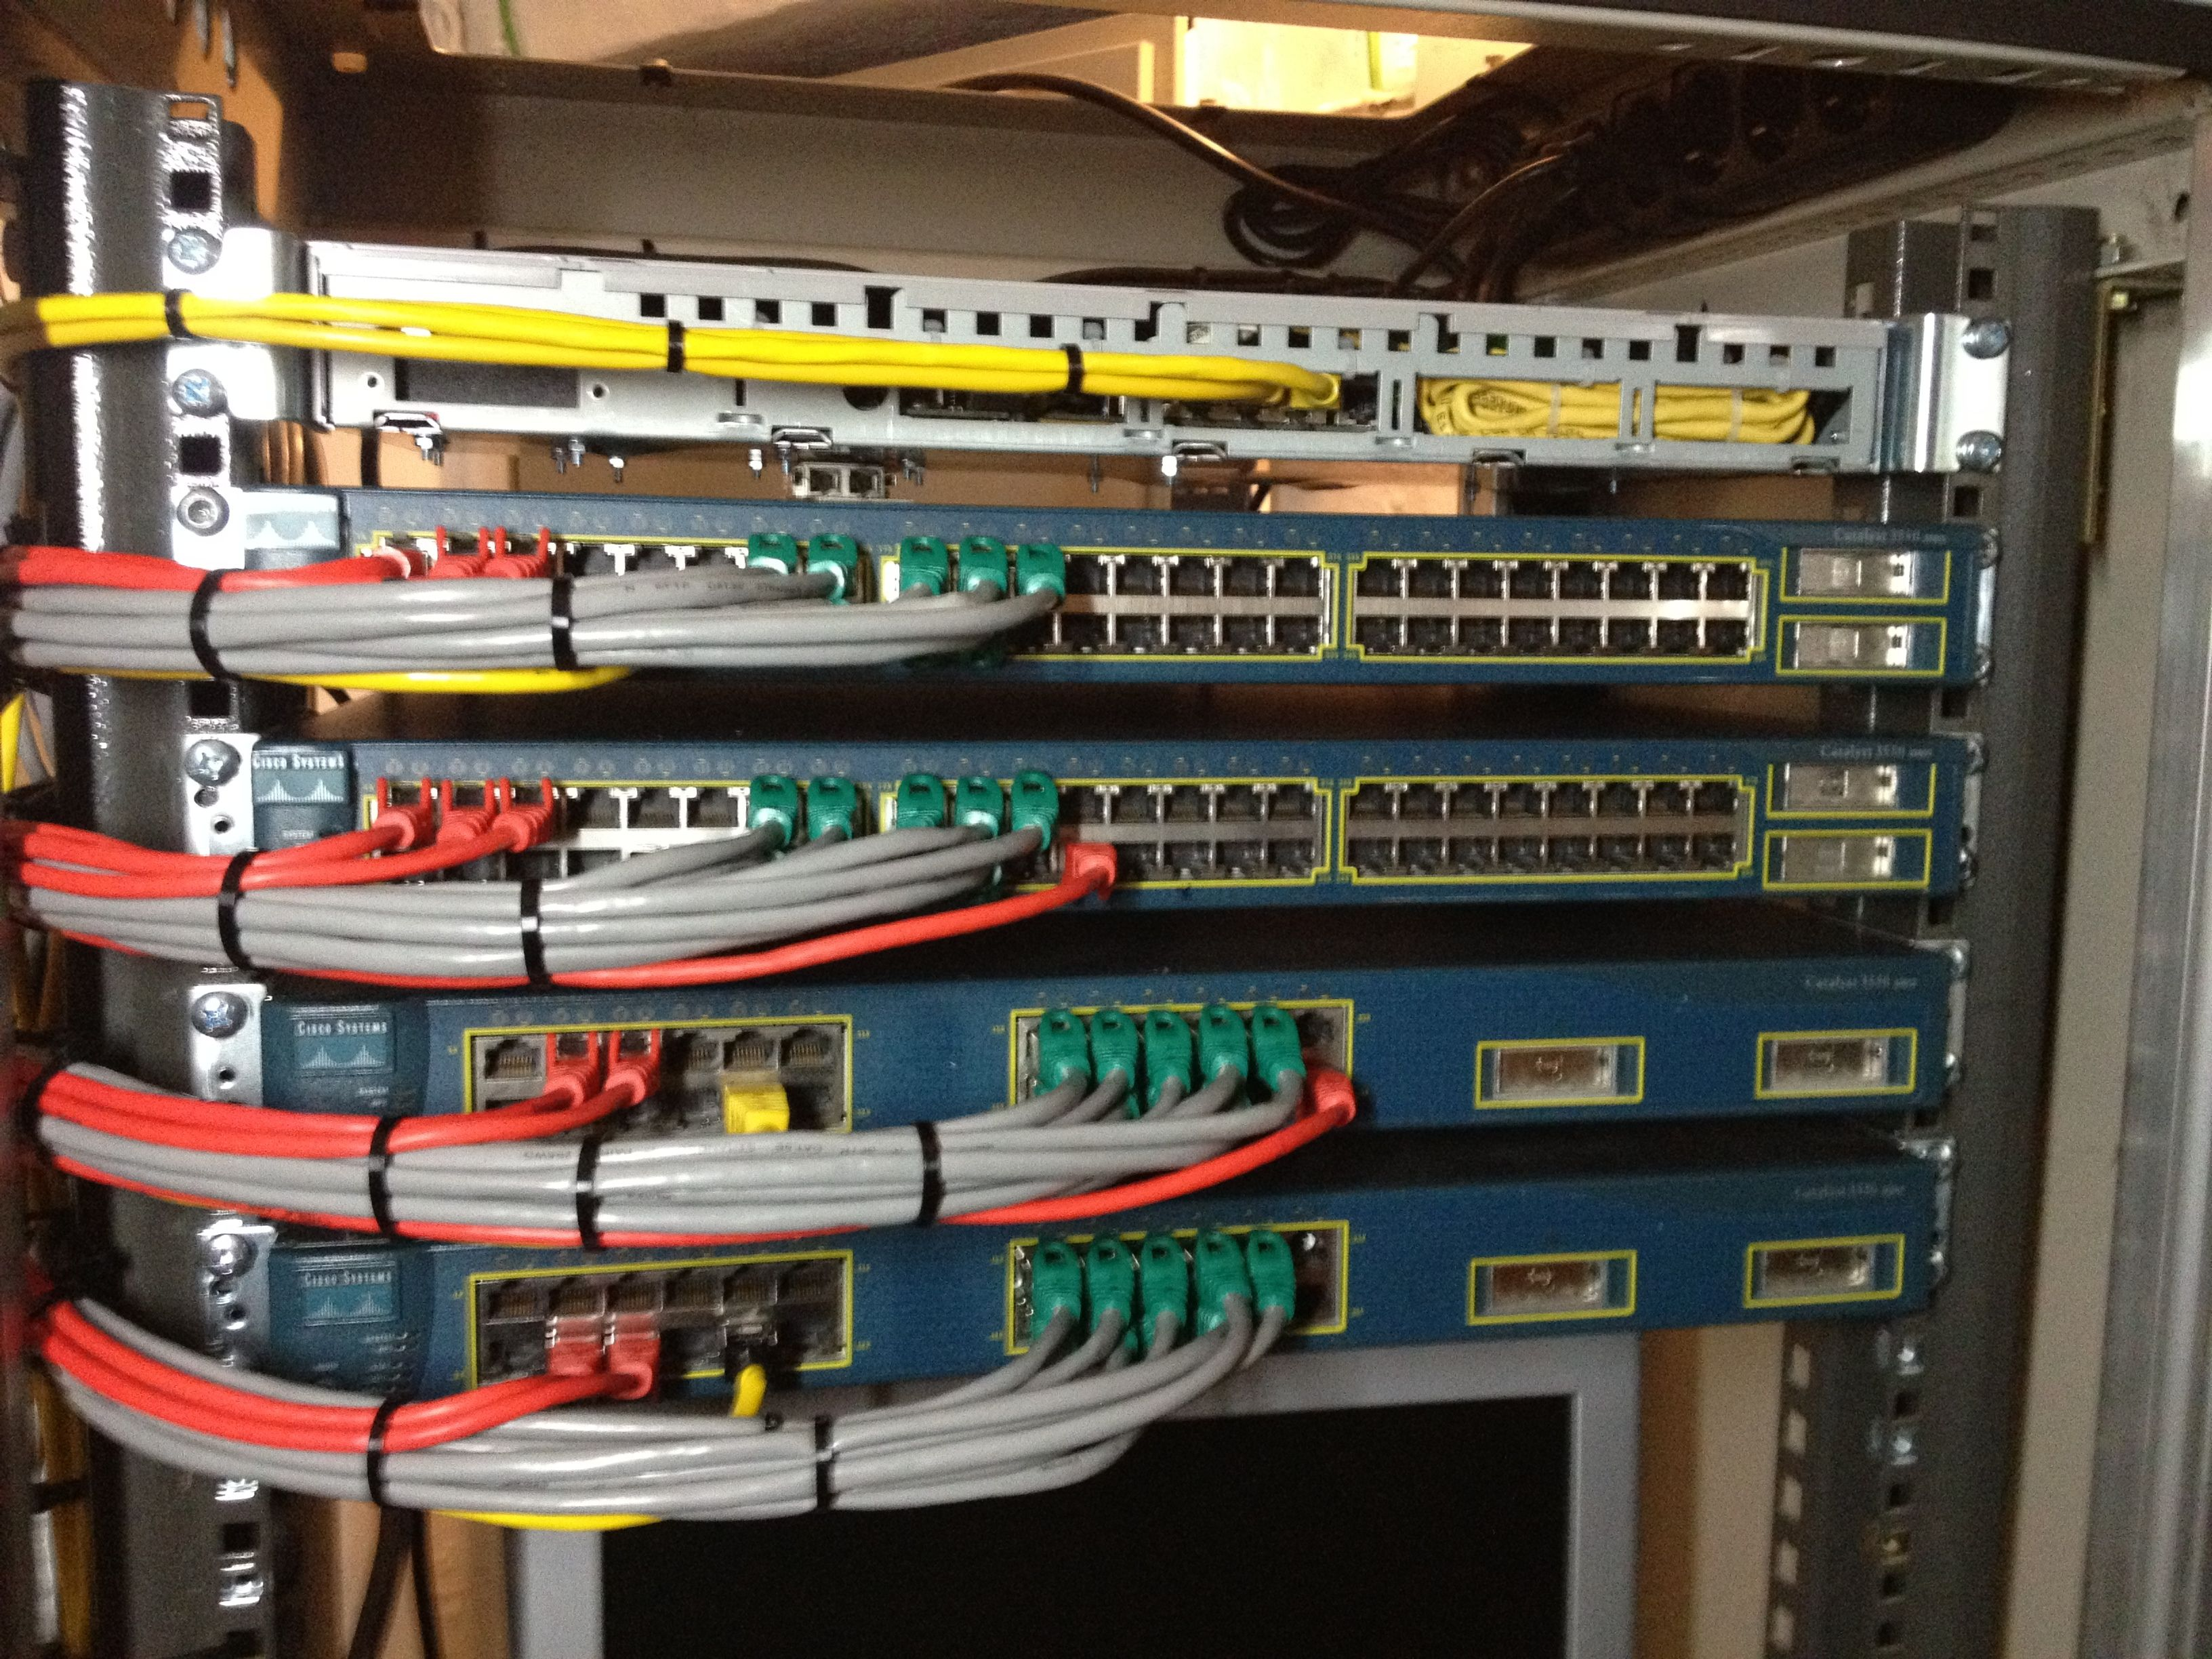 how to build a ccie rack gns dynamips part connect how to build a ccie rack gns3 dynamips part 4 connect the